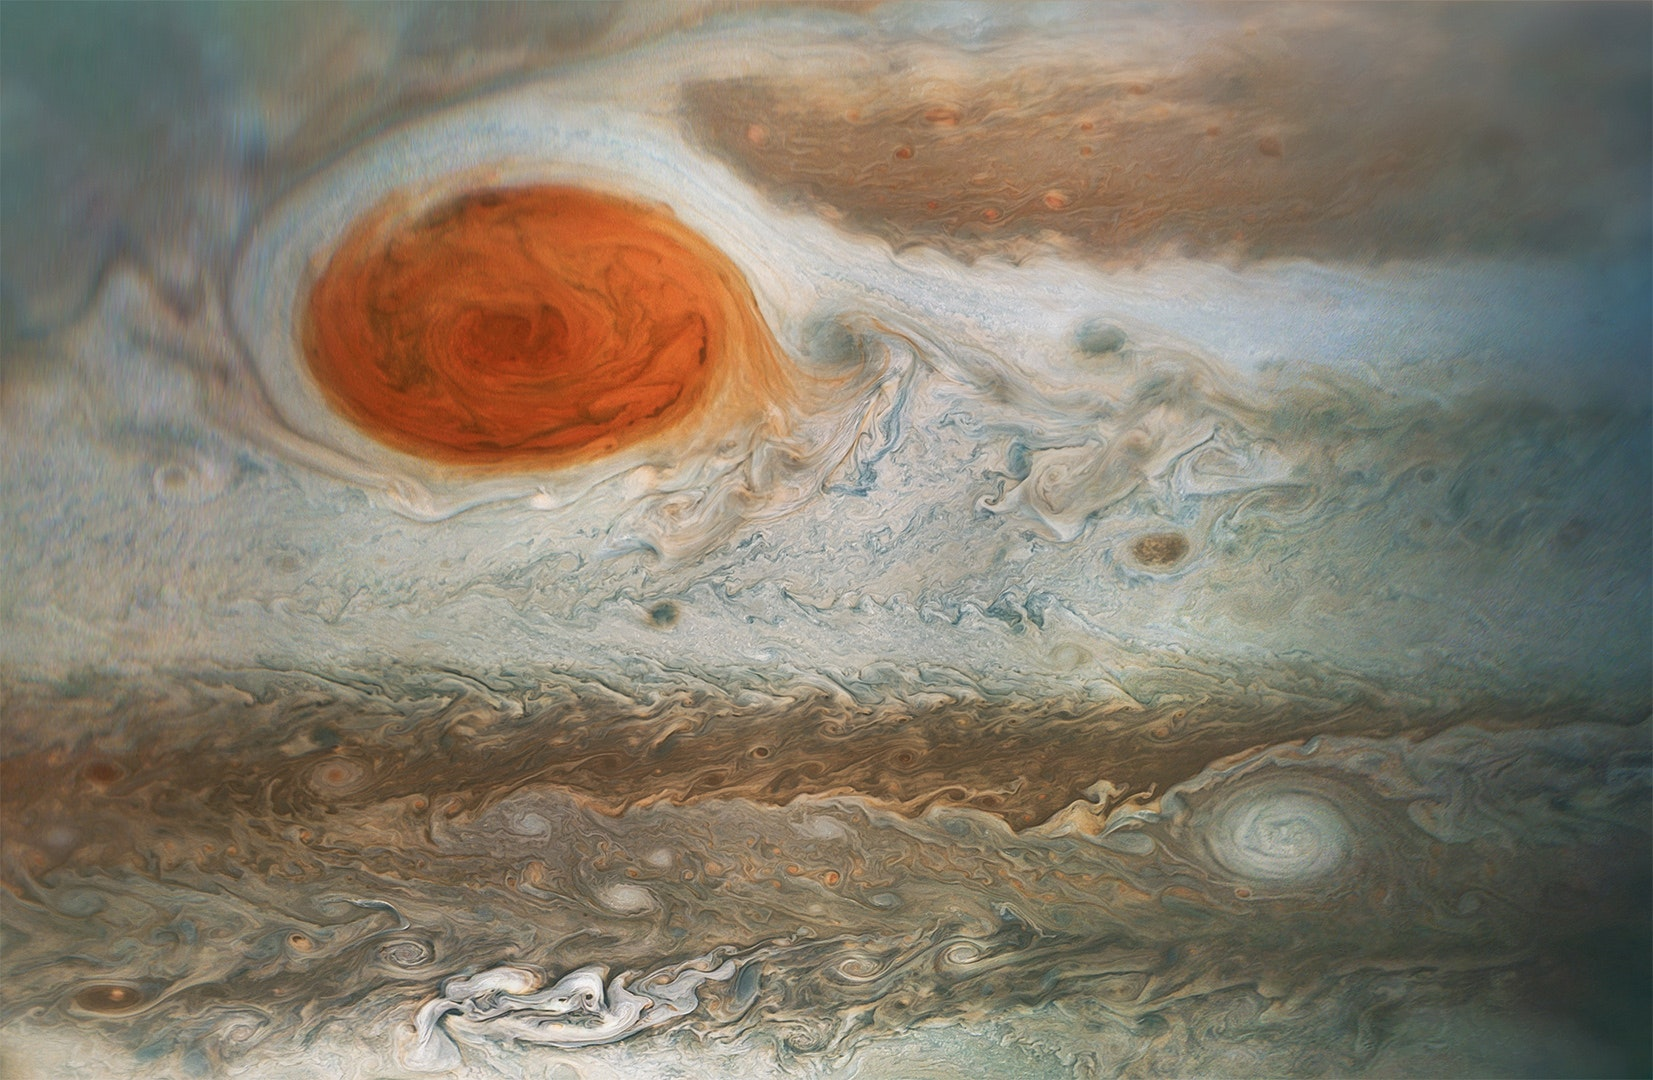 Jupiter's Great Red Spot: A 300-year-old cyclone persists but is shrinking